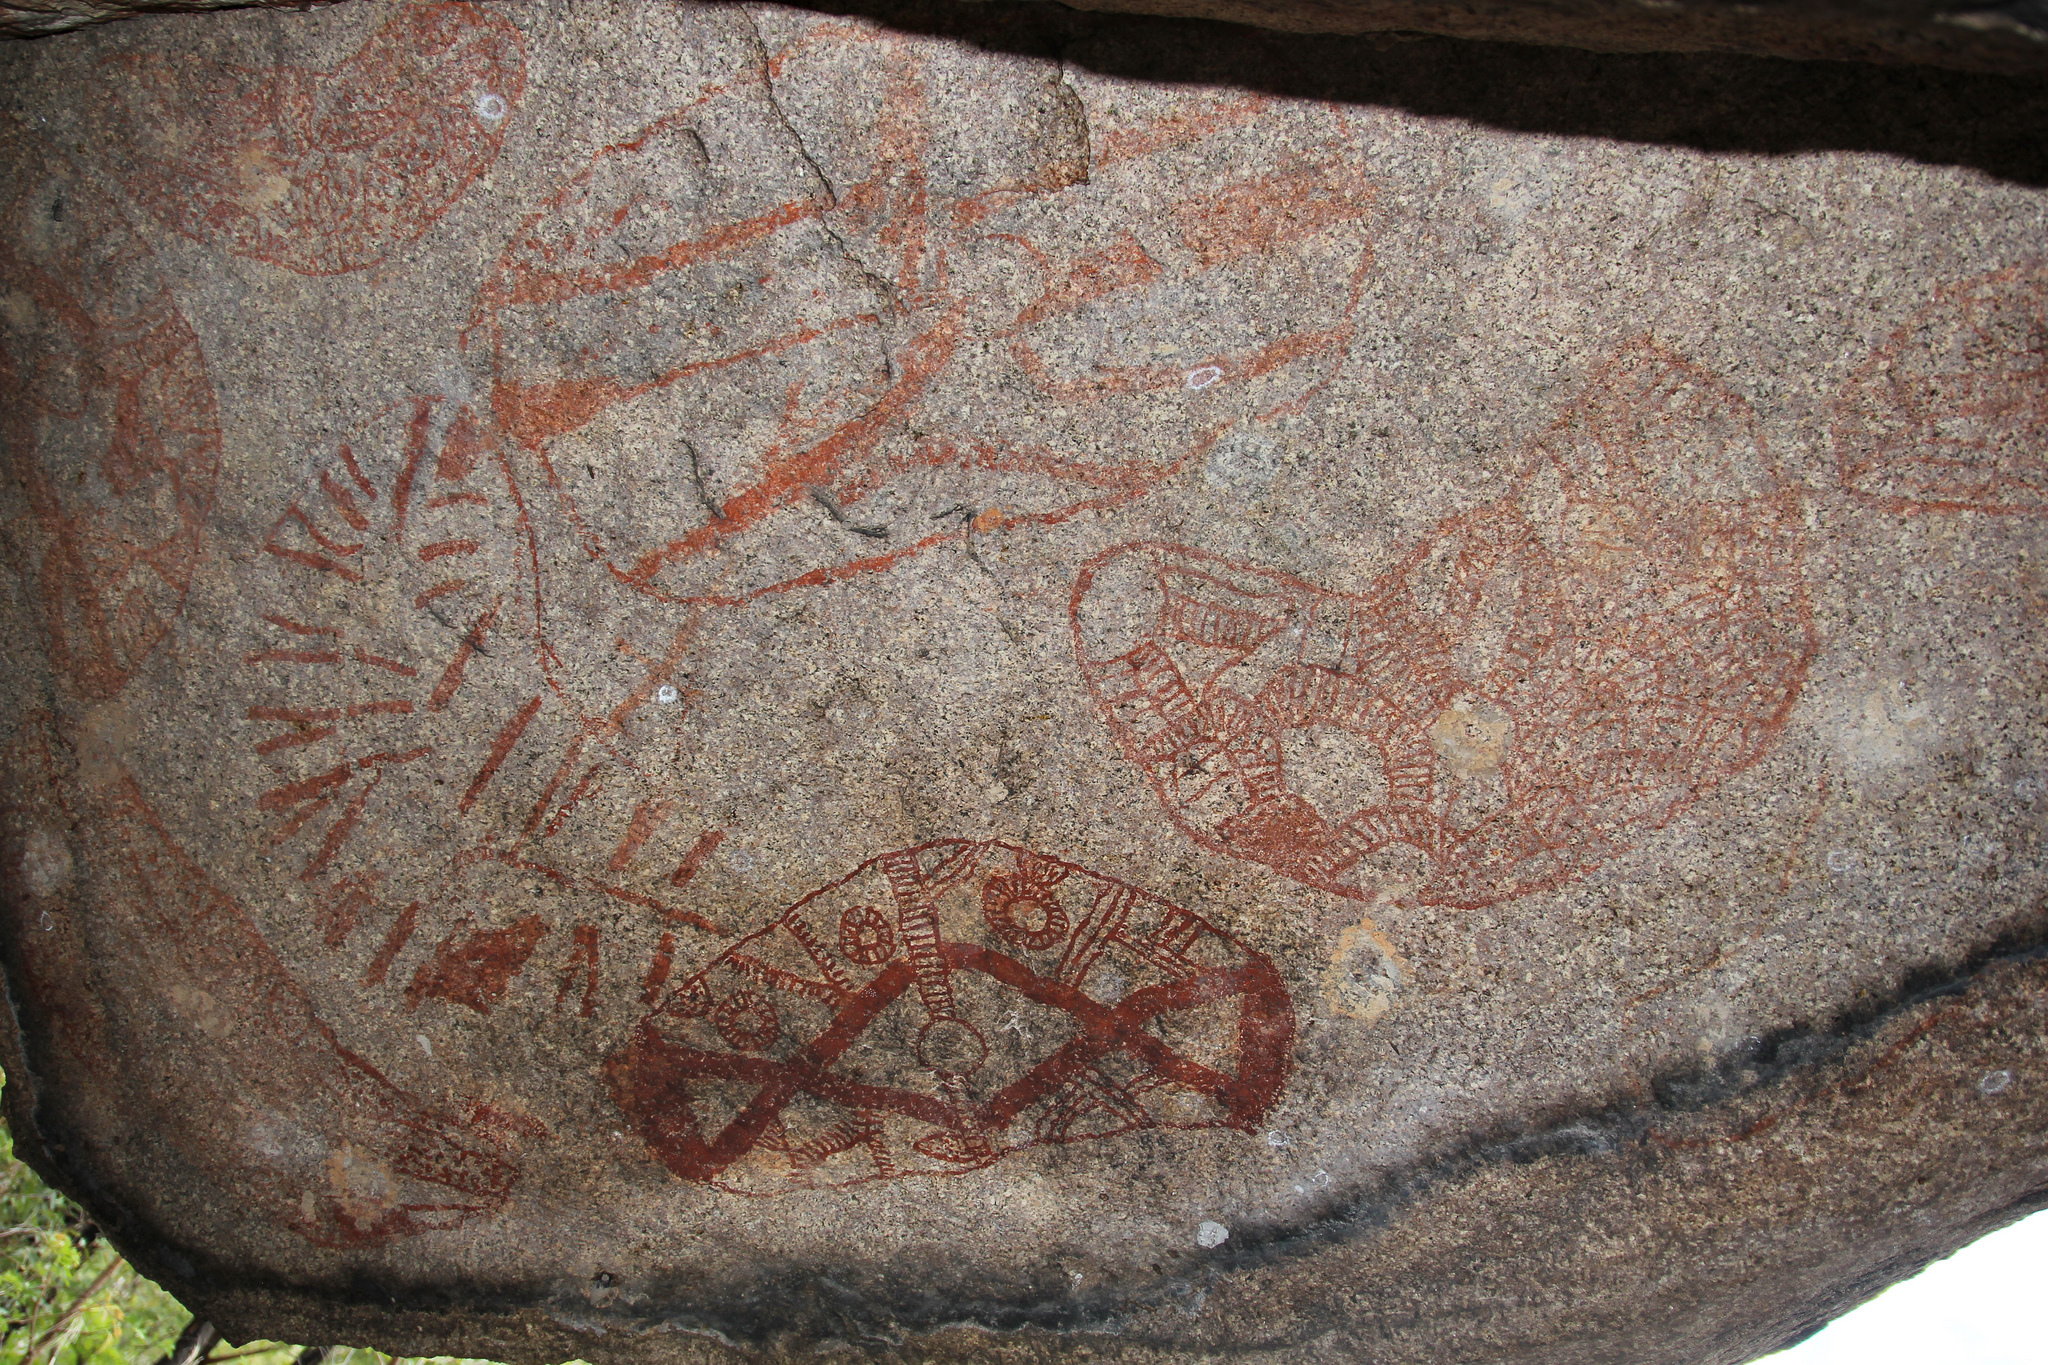 Clevdon aboriginal rock art